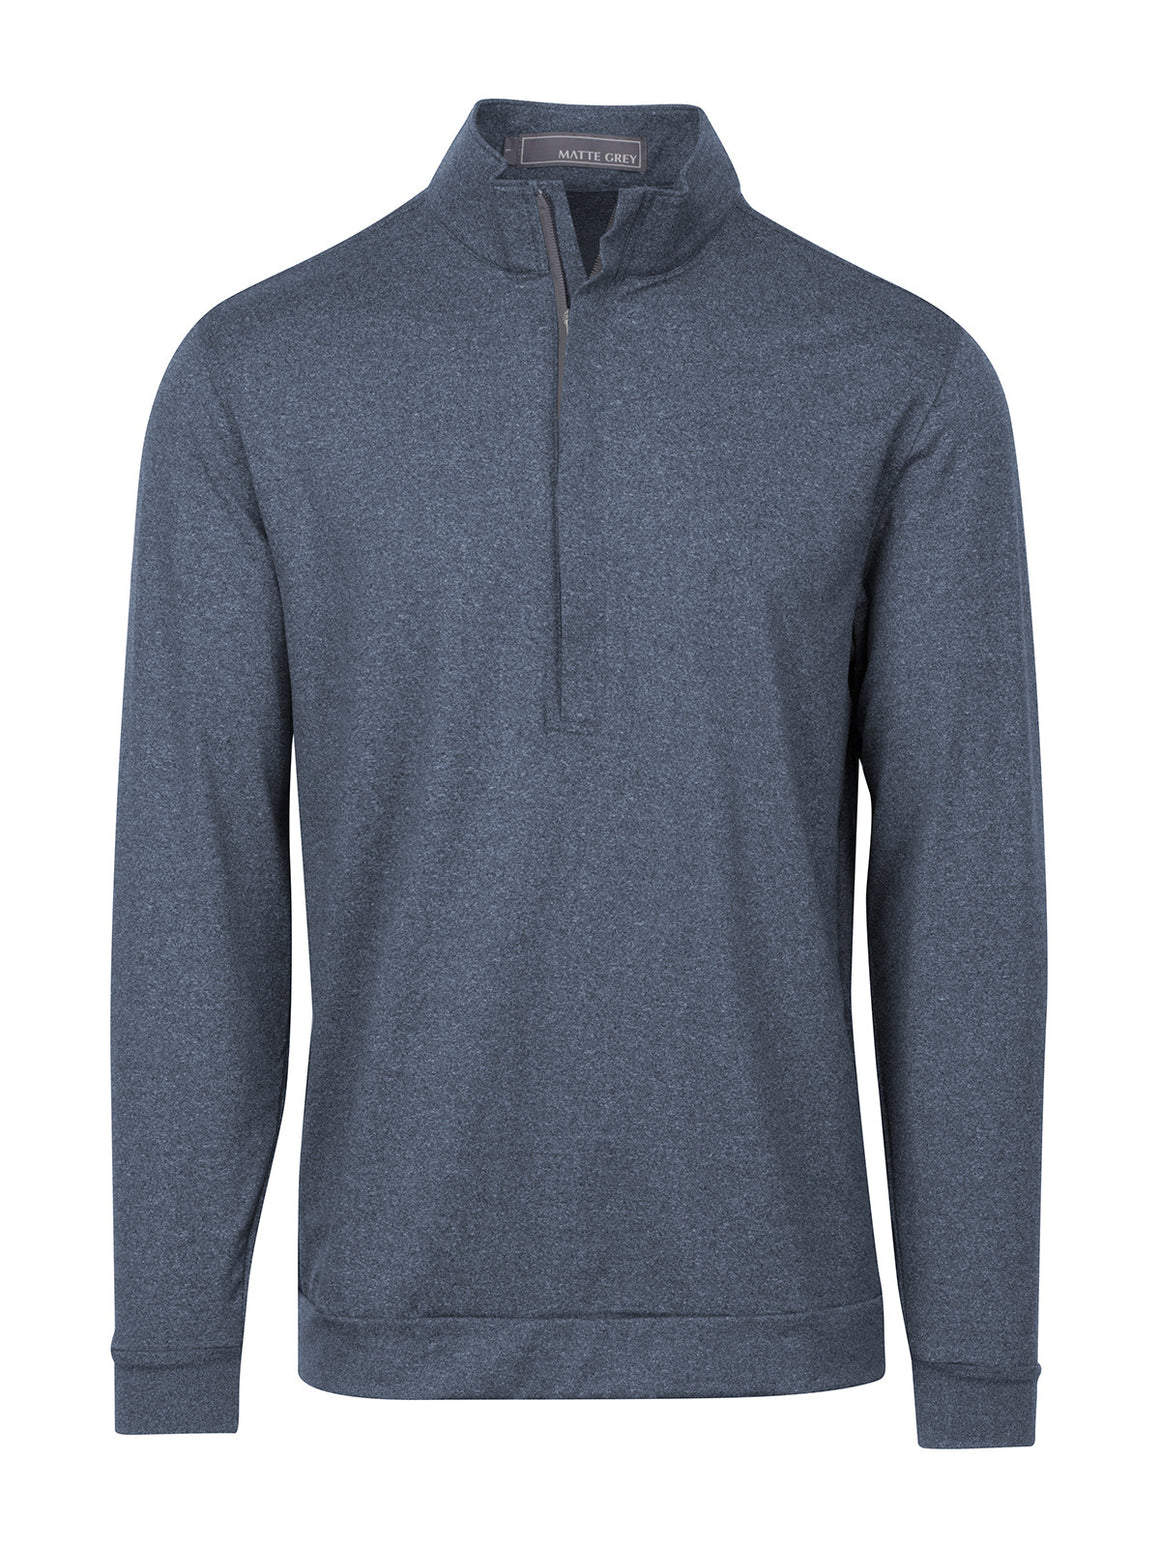 Hightower Half Zip - Navy Hea